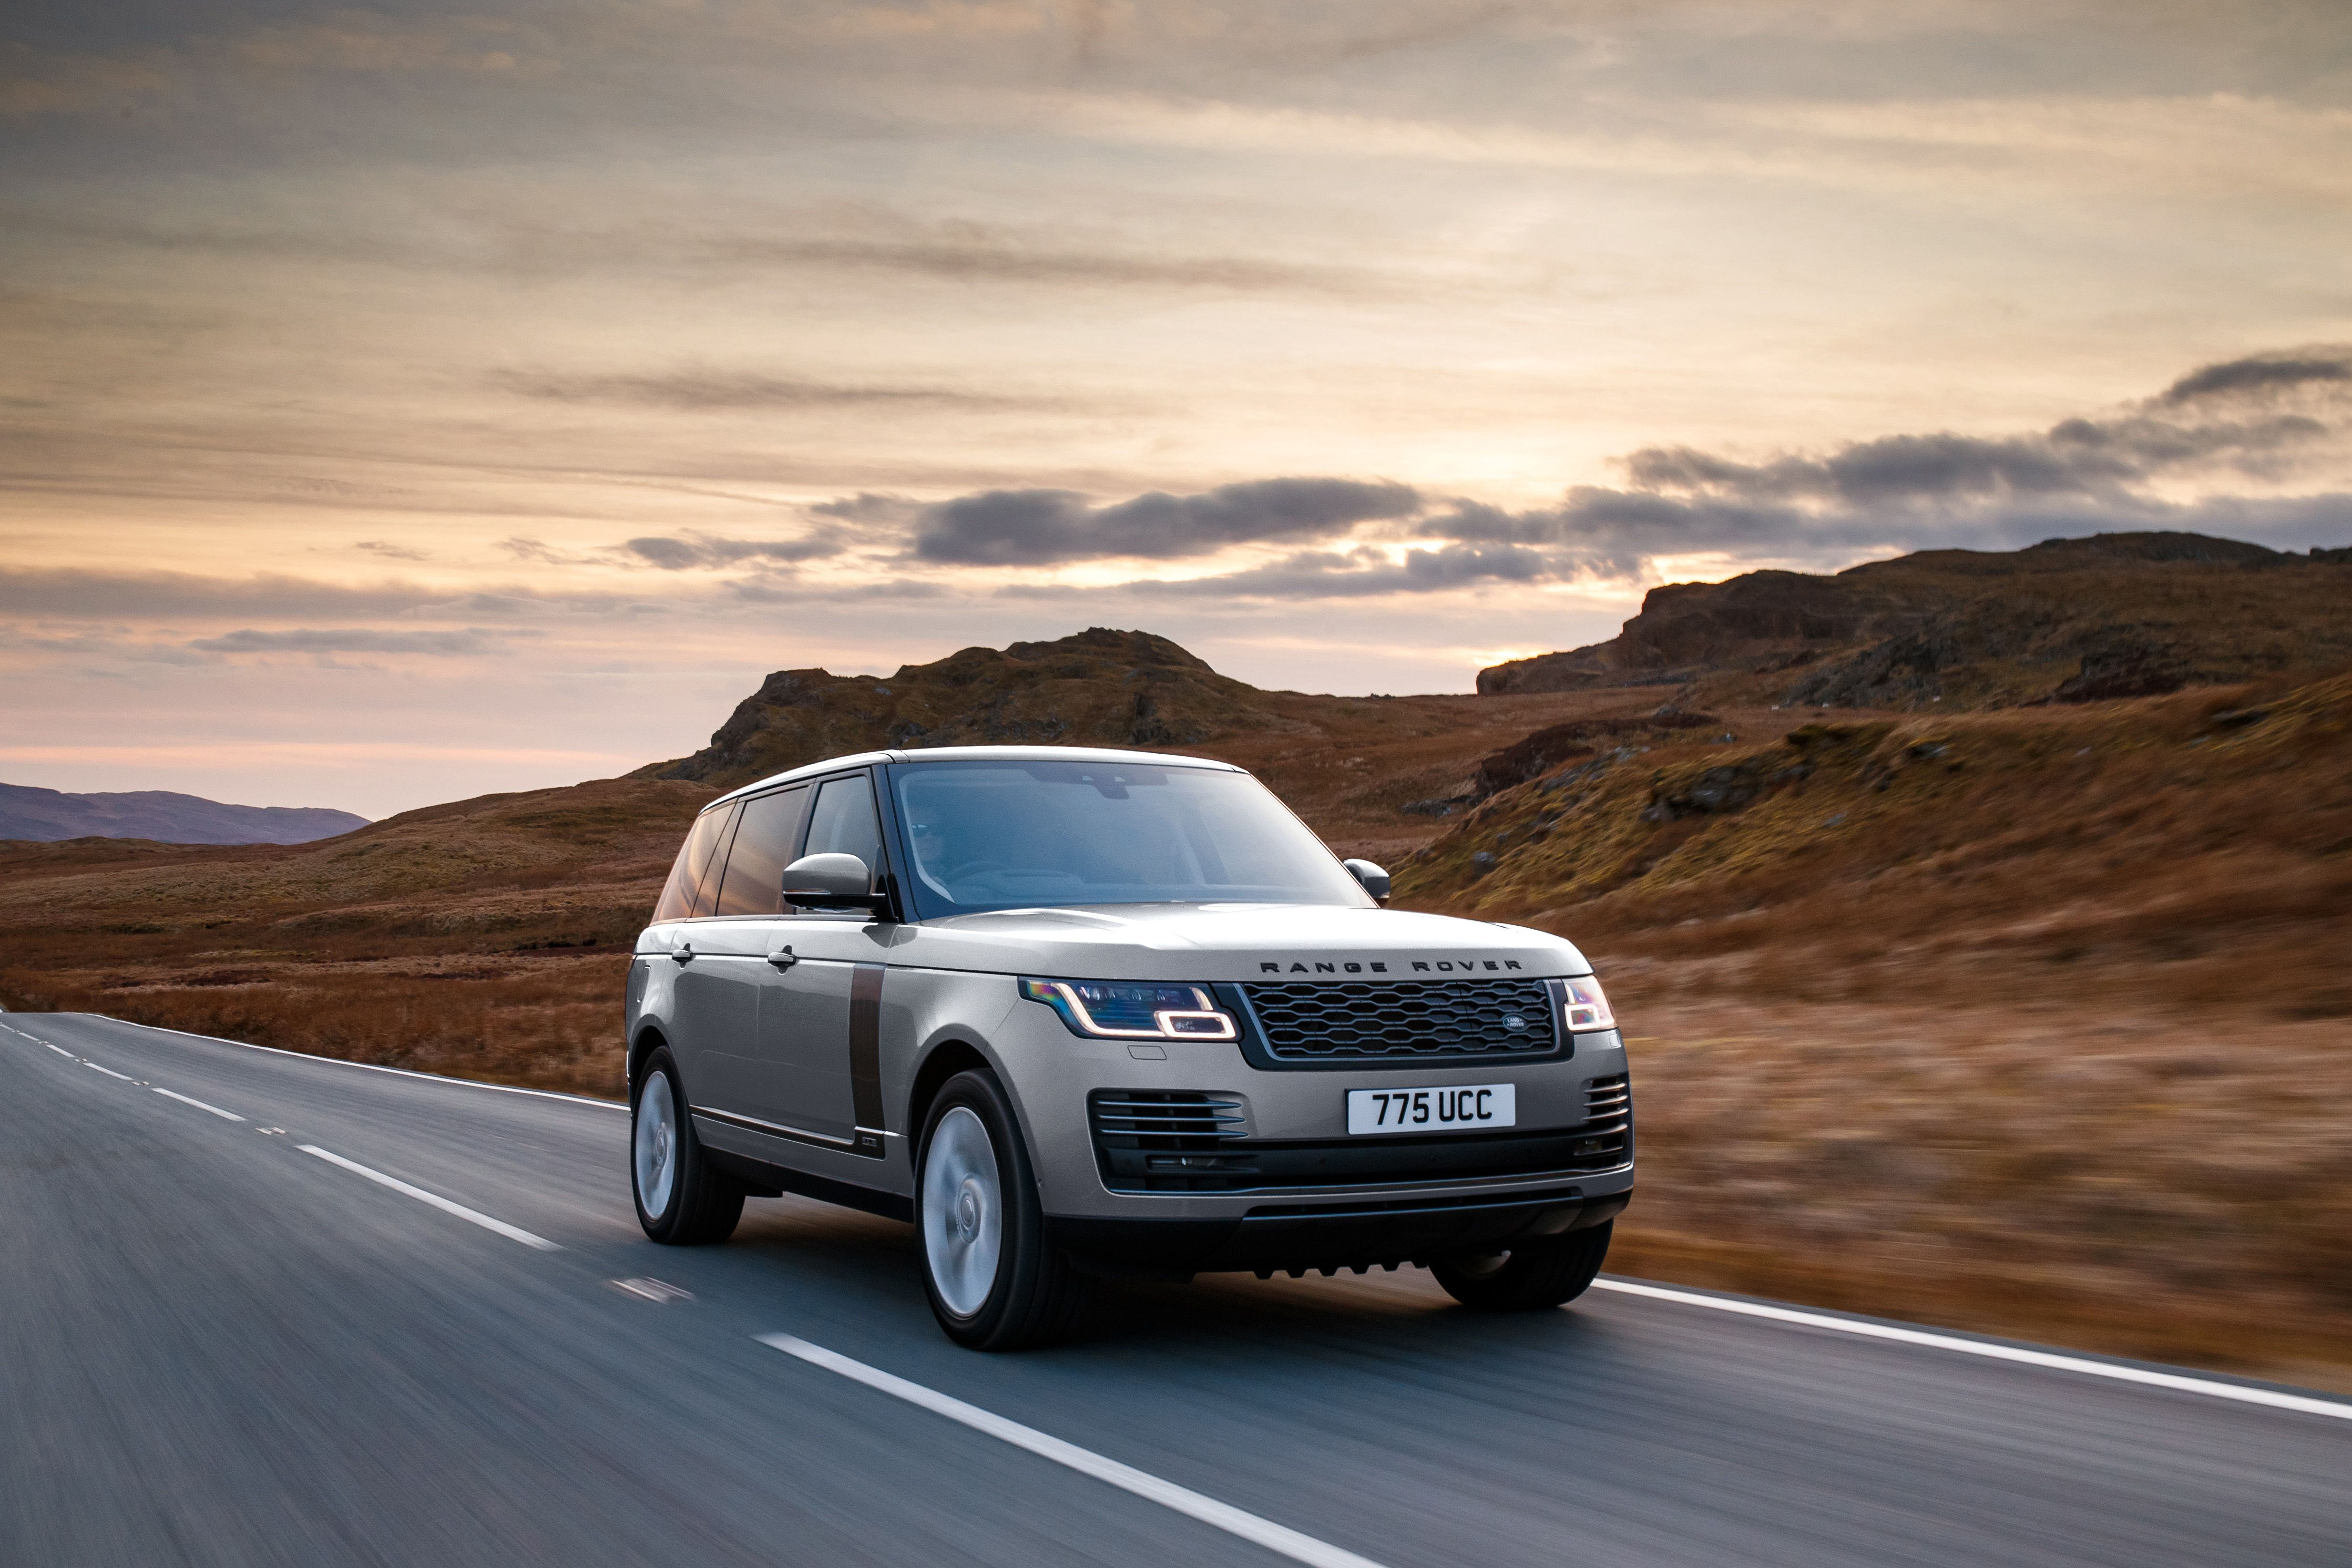 NEW GENUINE LAND ROVER /& RANGE ROVER SERVICE BOOK ALL MODELS NO REPLACEMENT